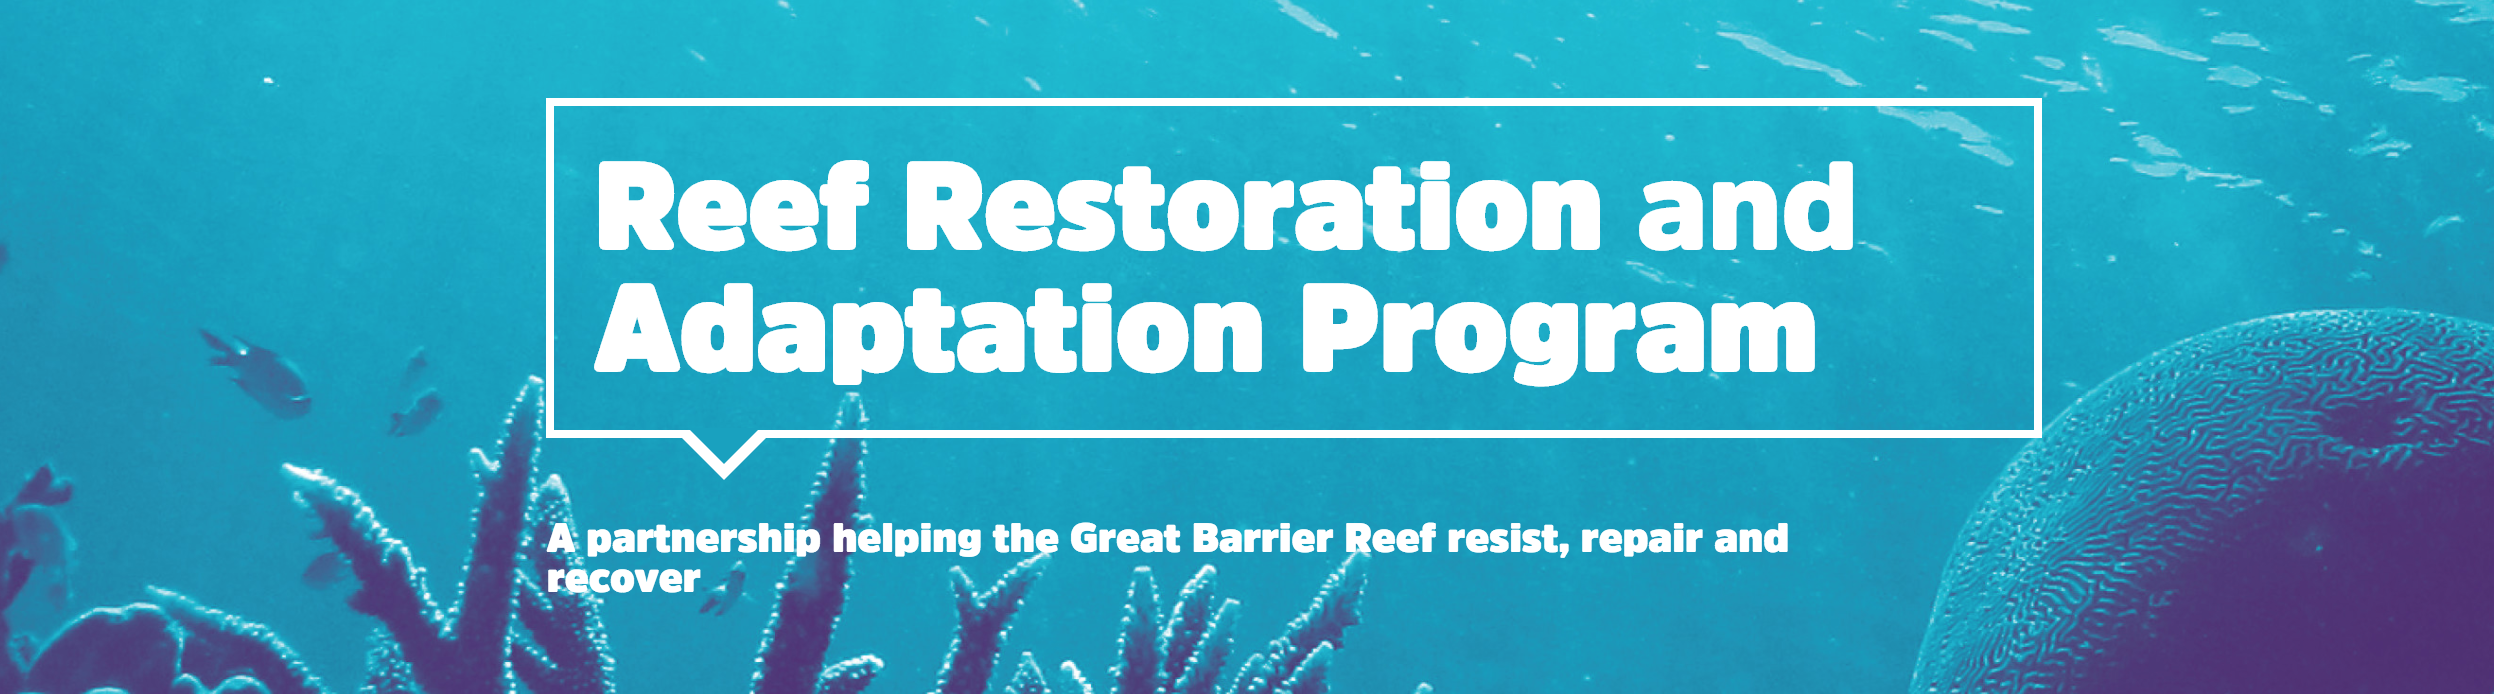 Reef restoration videos from the Reef Restoration and Adaptation Program, Australia